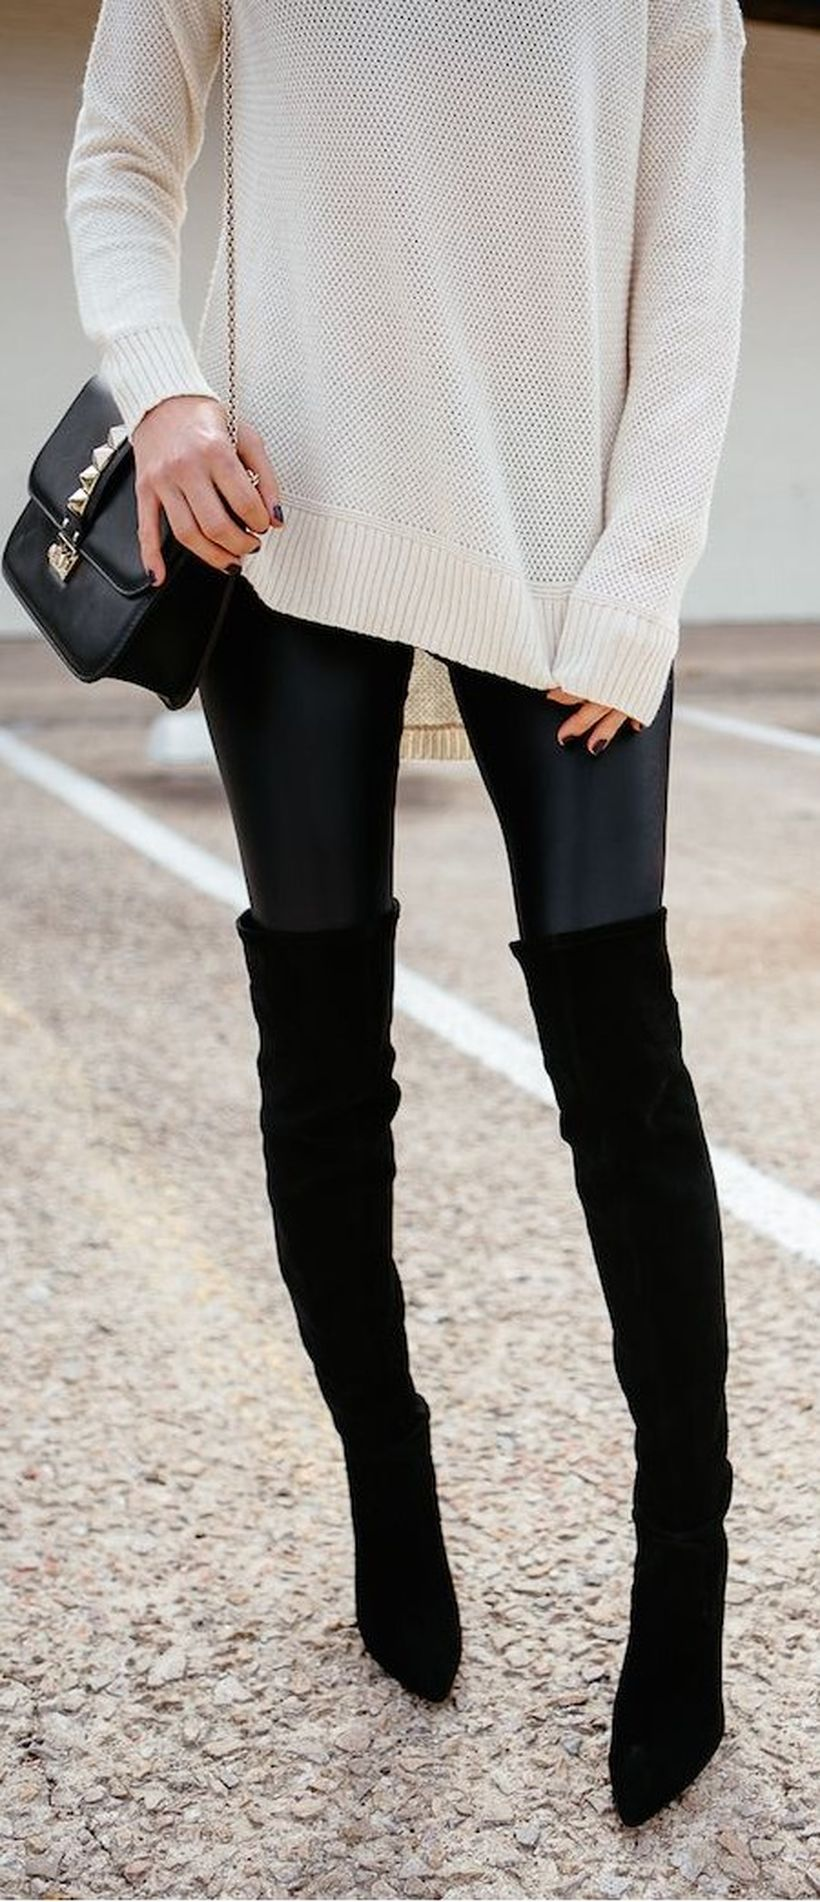 Trendy over the knee boots for winter and fall outfits 34